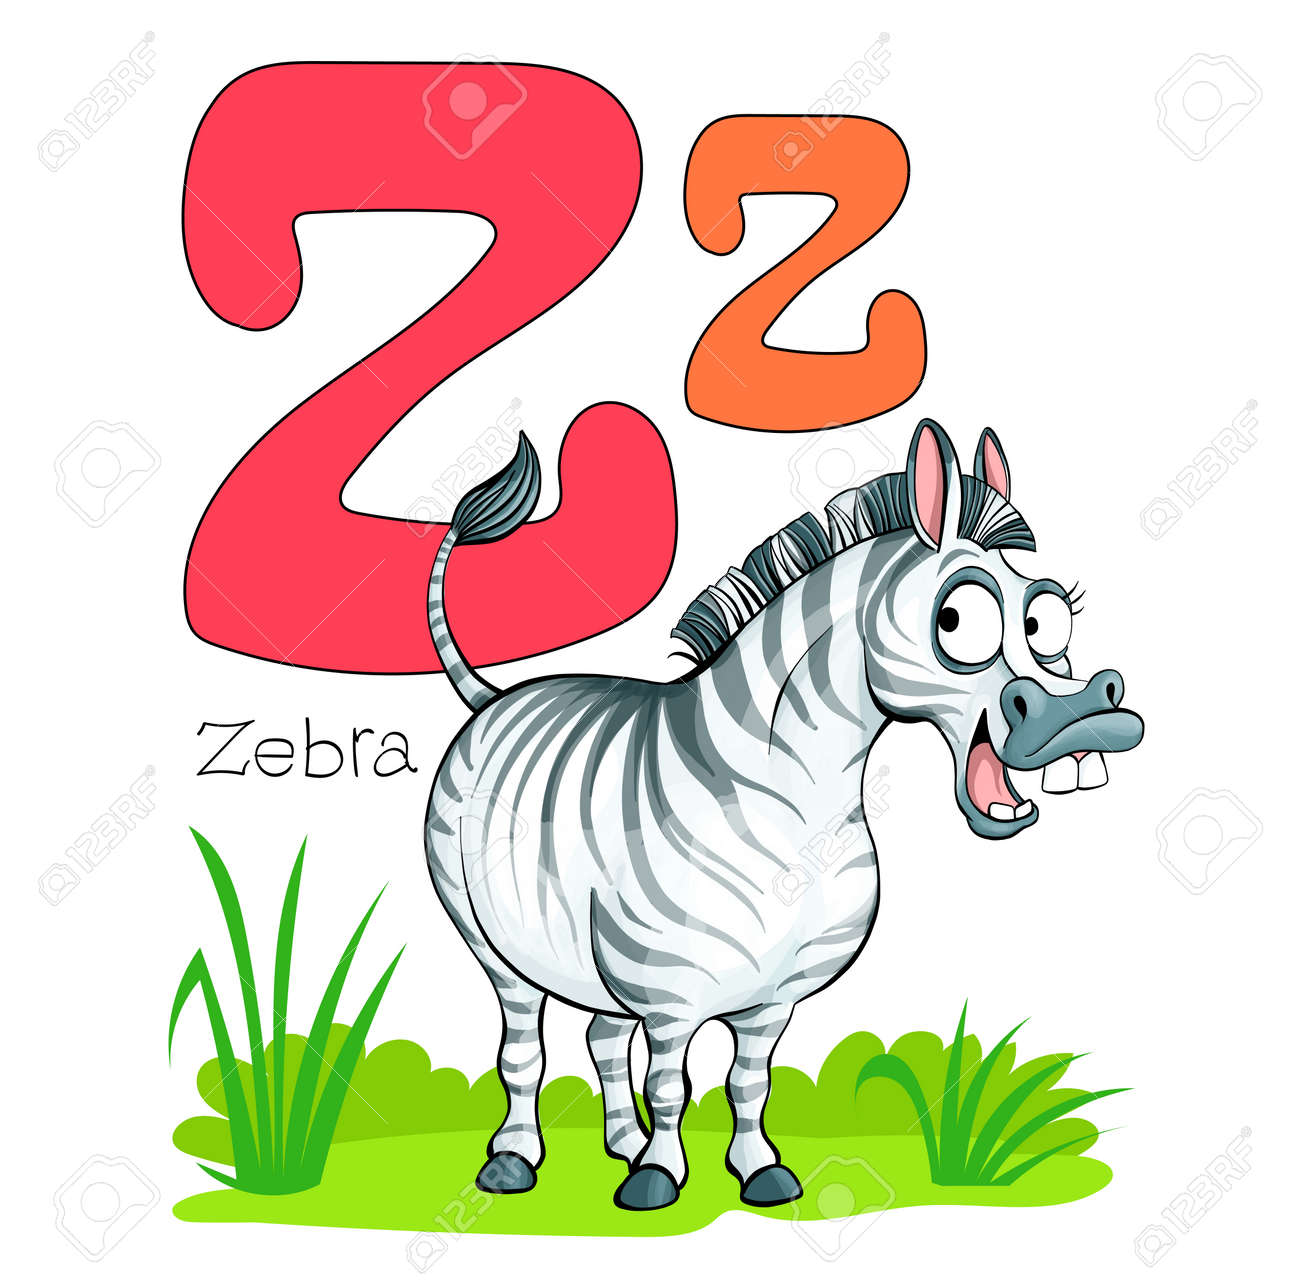 Vector illustration. Alphabet with animals. Large capital letter Z with a picture of a bright, cute zebra. - 168498444